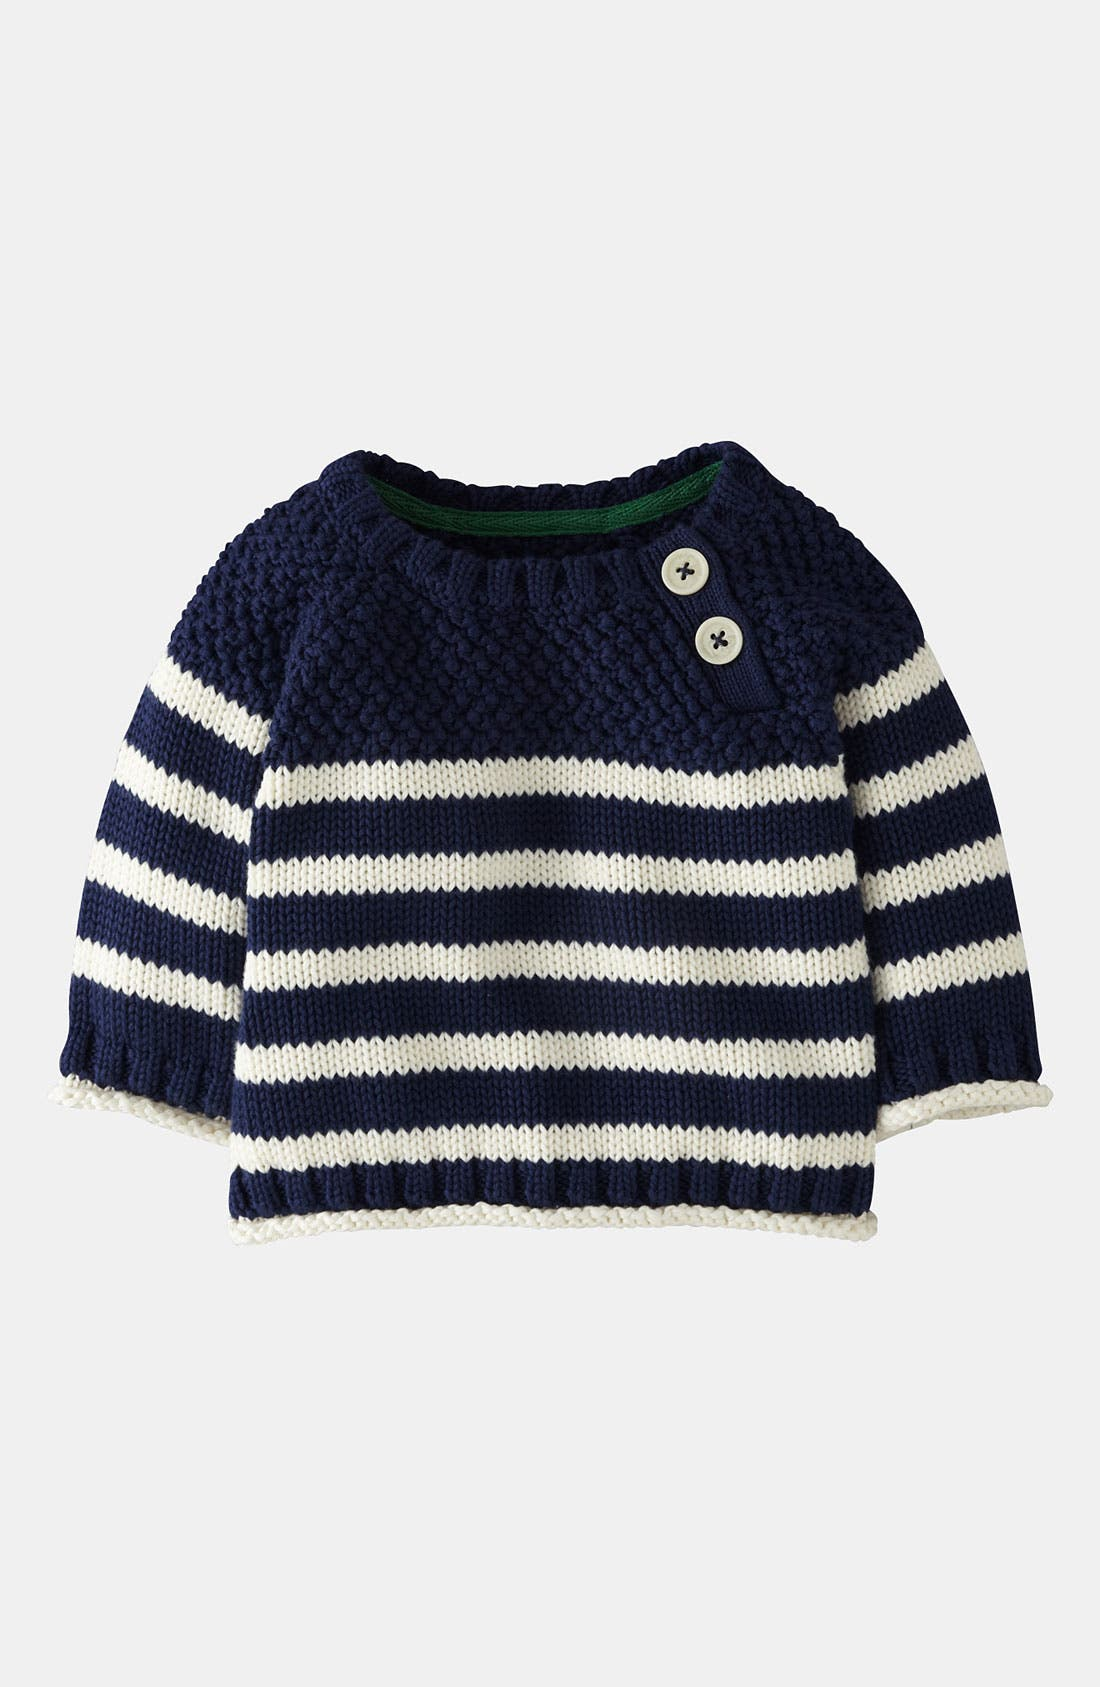 Alternate Image 1 Selected - Mini Boden Knit Sweater (Baby)